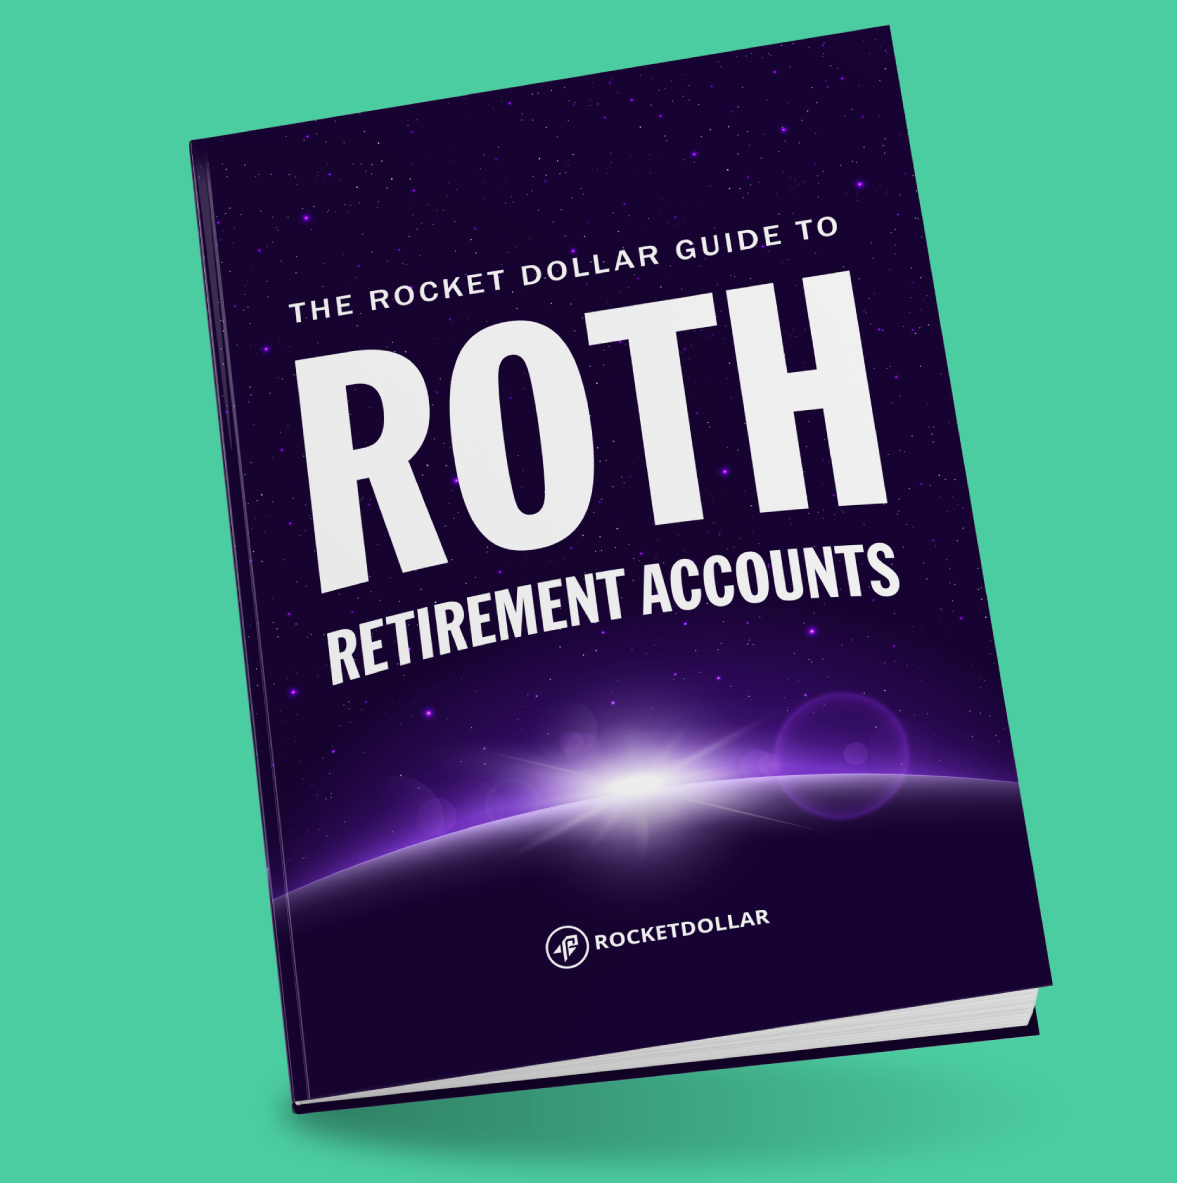 The Rocket Dollar Guide to Roth Retirement Accounts